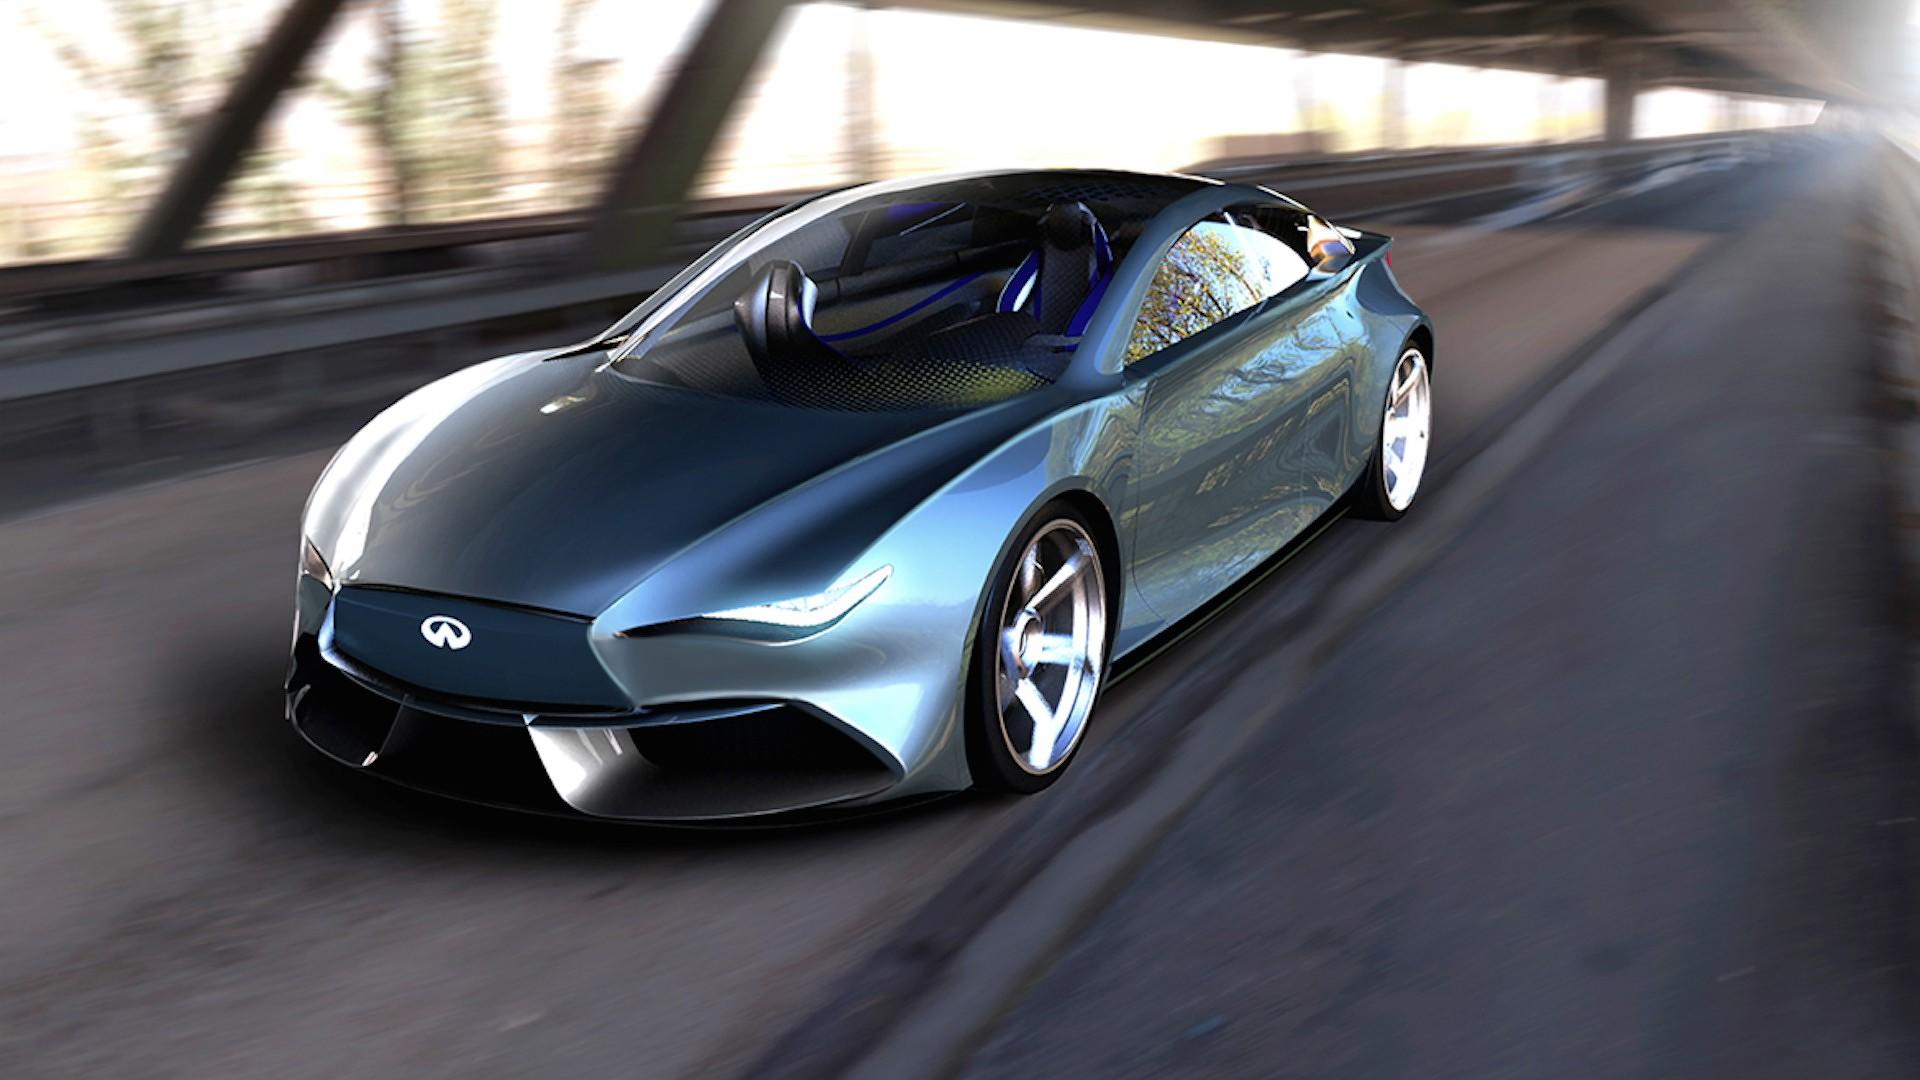 Q50 For Sale >> Infiniti Q50 EV Rendering Proposes An Attractive Tesla Competitor